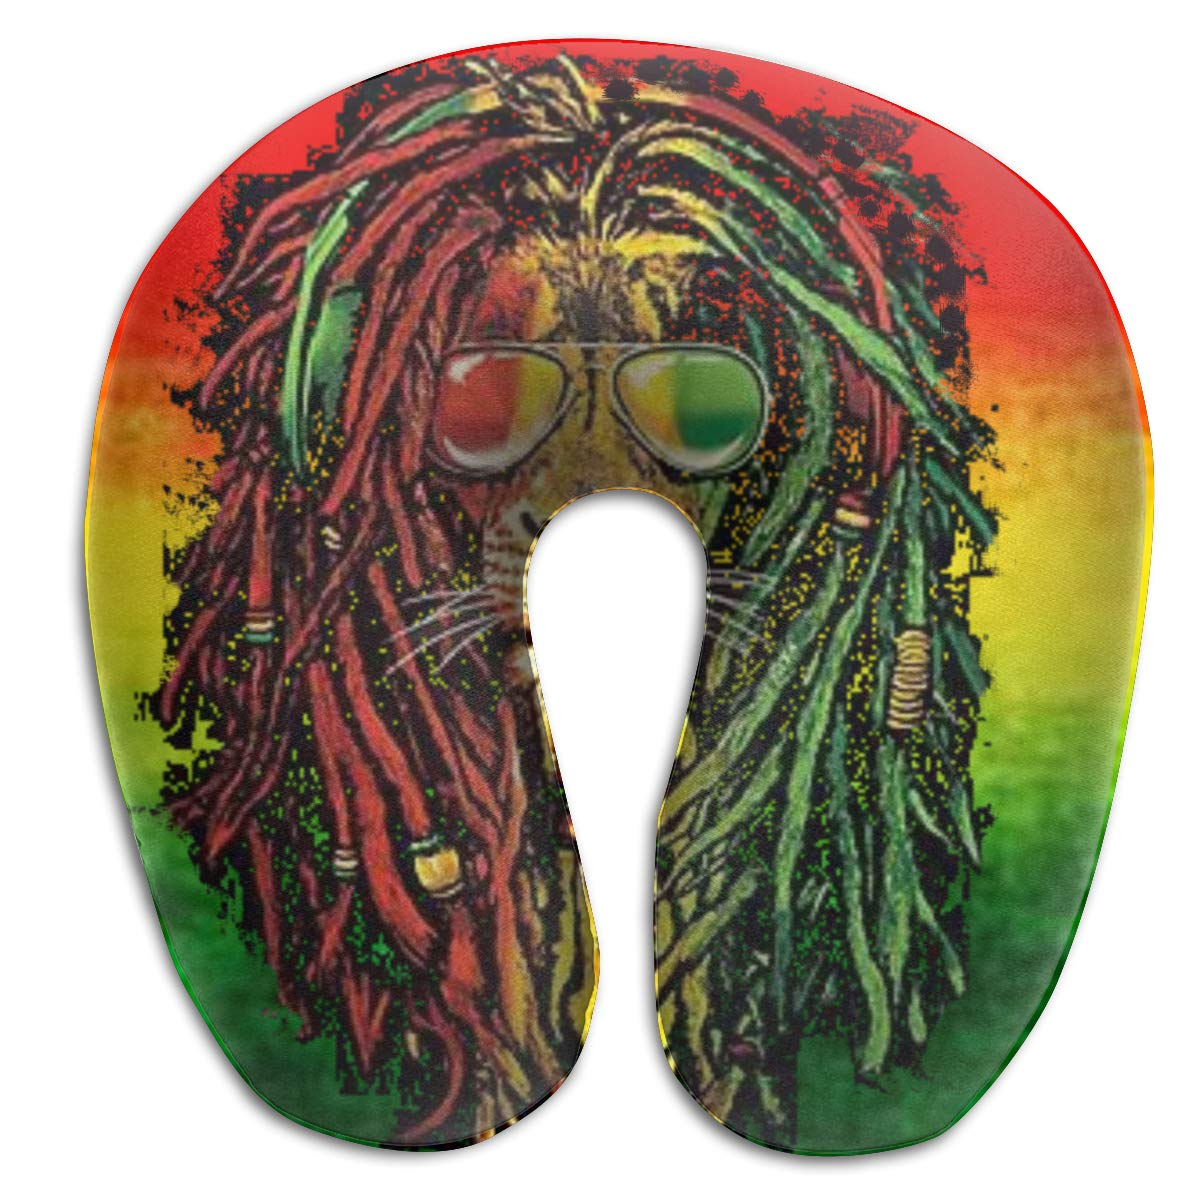 Wodehous Adonis Comfort Rasta Lion Colours Memory Foam Neck Pillows Neck-Supportive Travel Pillow